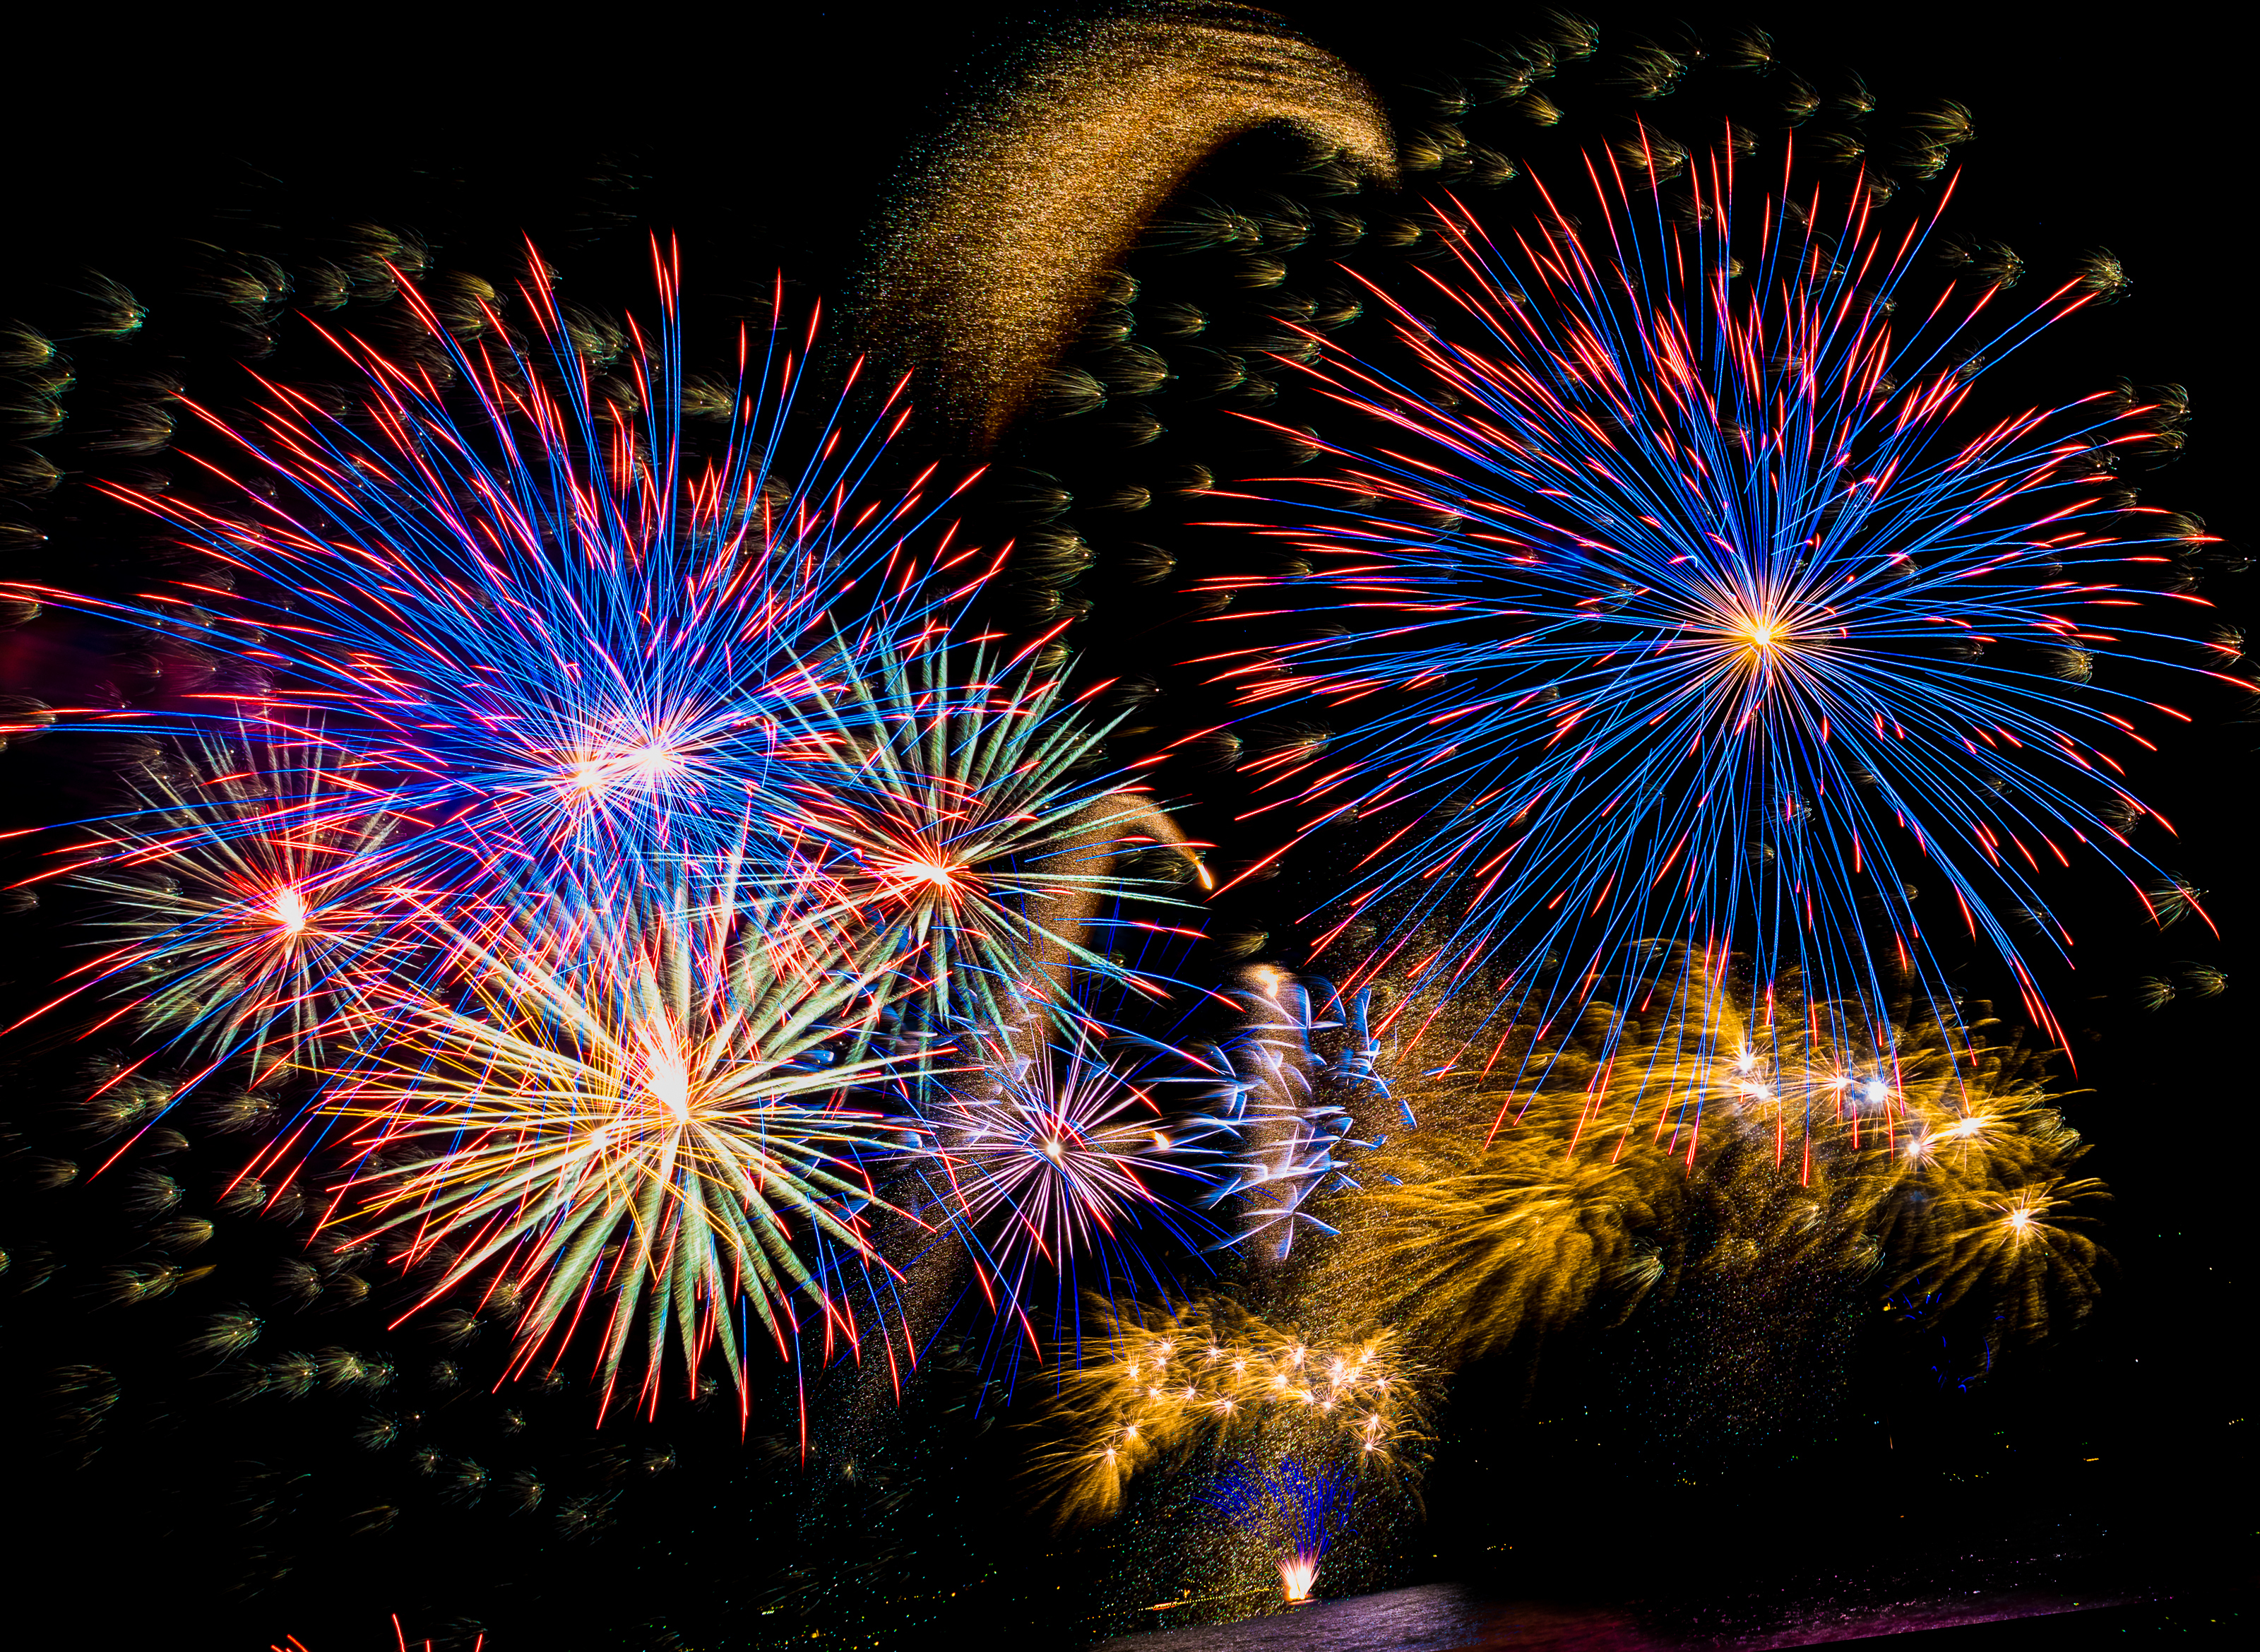 brightly coloured fireworks lighting up the night sky